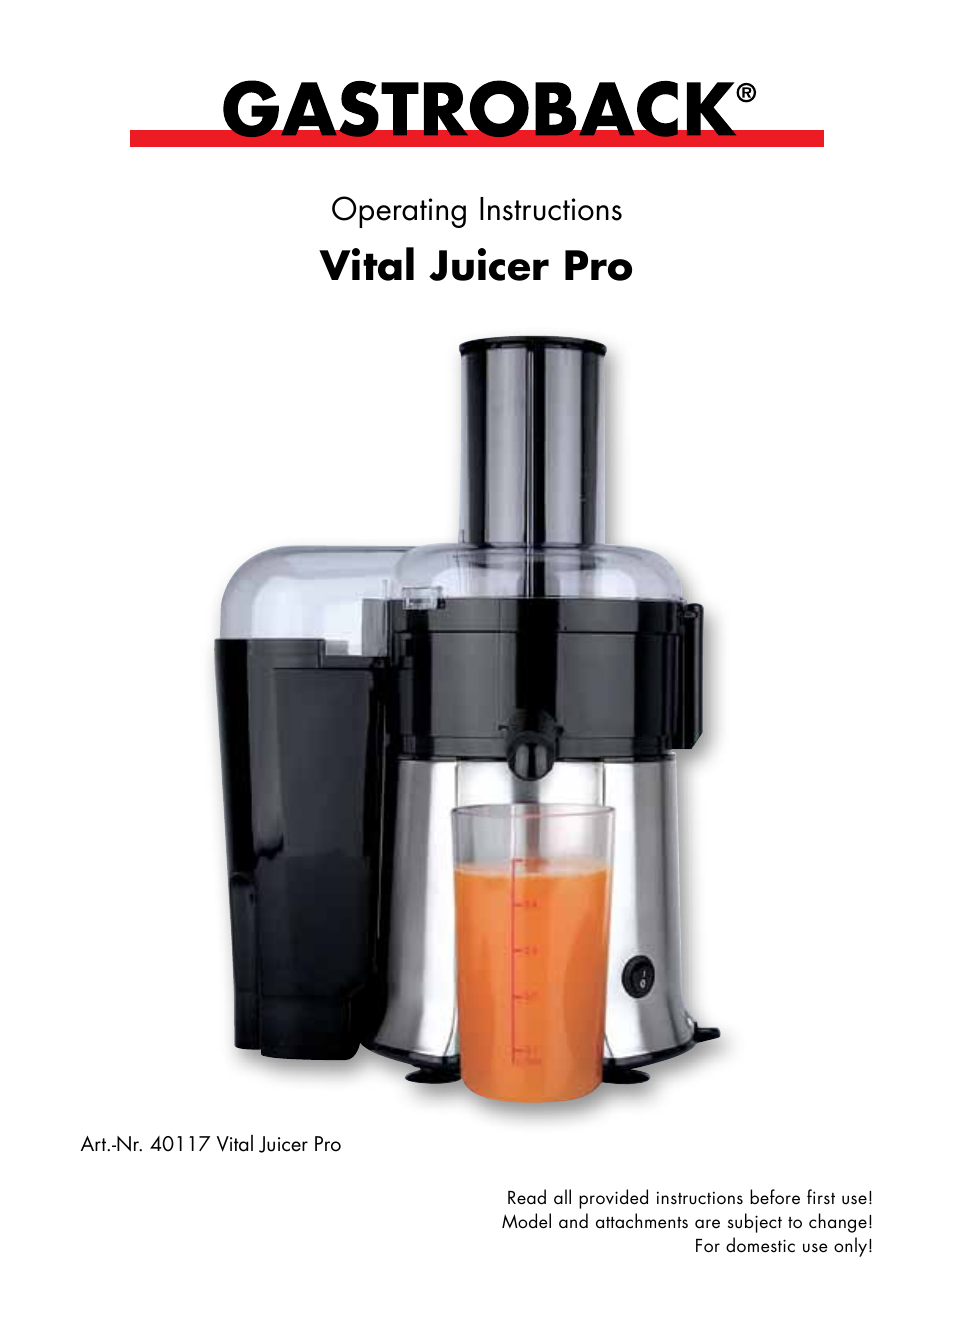 gastroback 40117 vital juicer pro user manual 24 pages rh manualsdir com GE Juice Extractor Model 106816 GE 169201 Juice Extractor